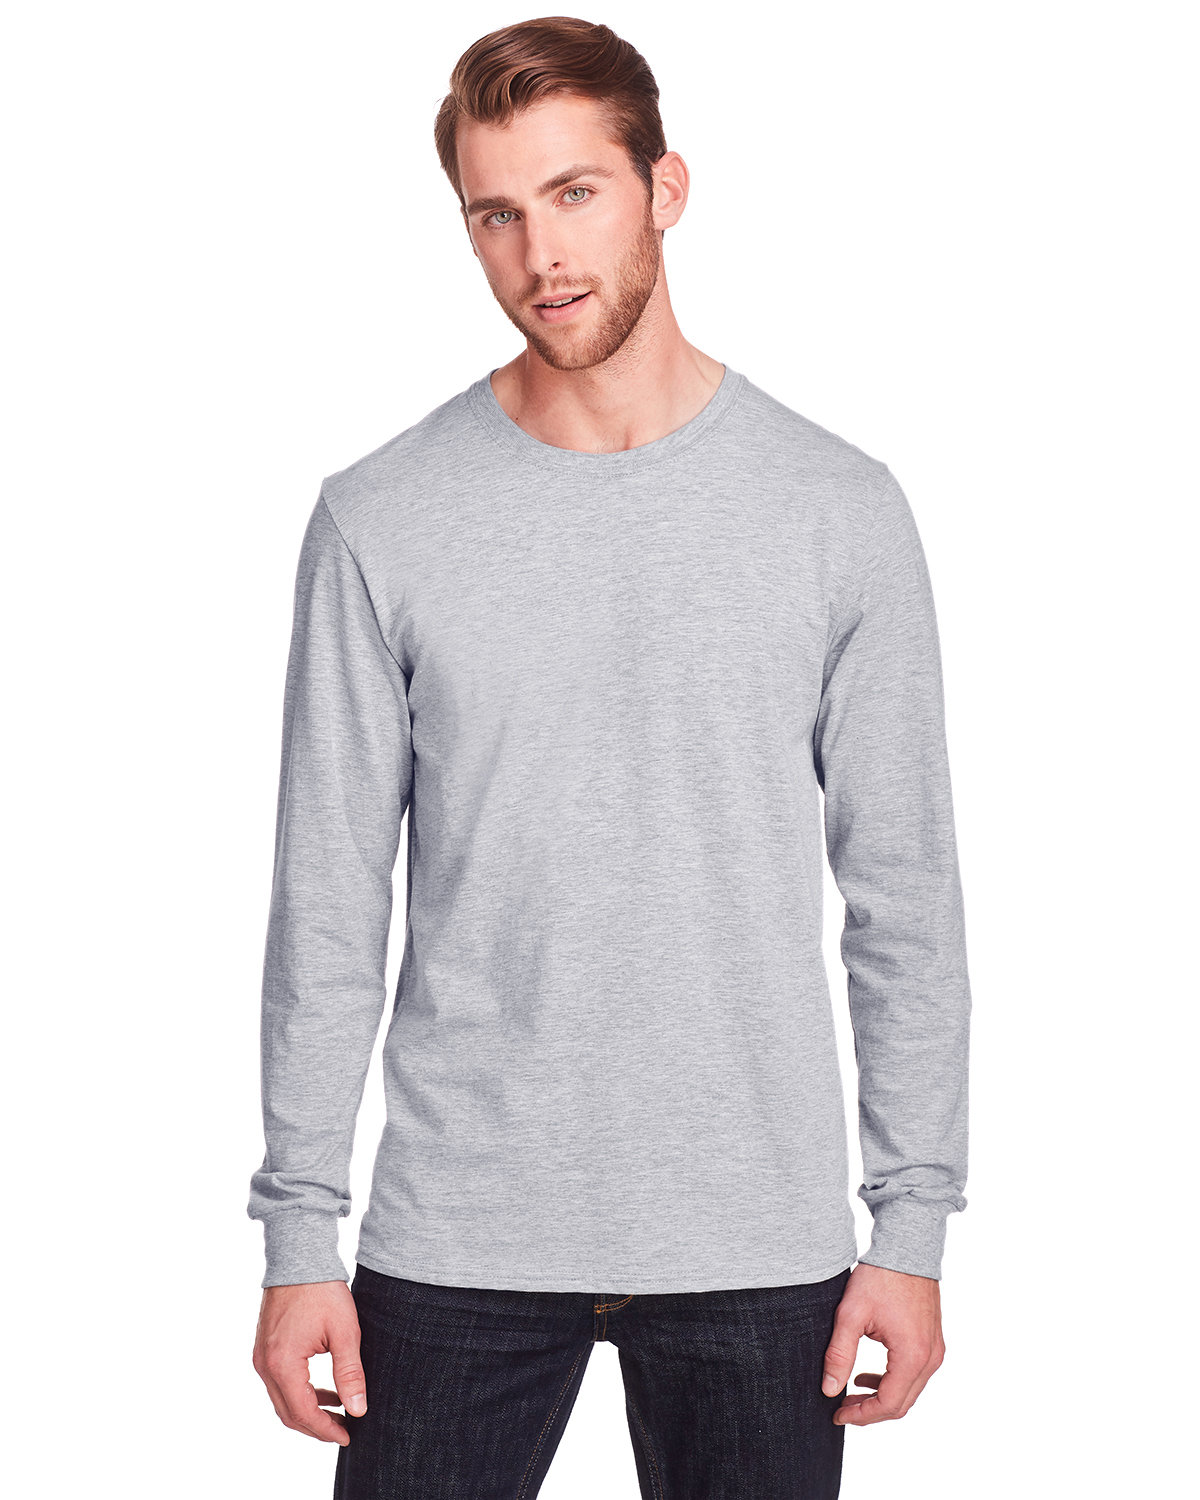 Fruit of the Loom Adult ICONIC™ Long Sleeve T-Shirt ATHLETIC HEATHER